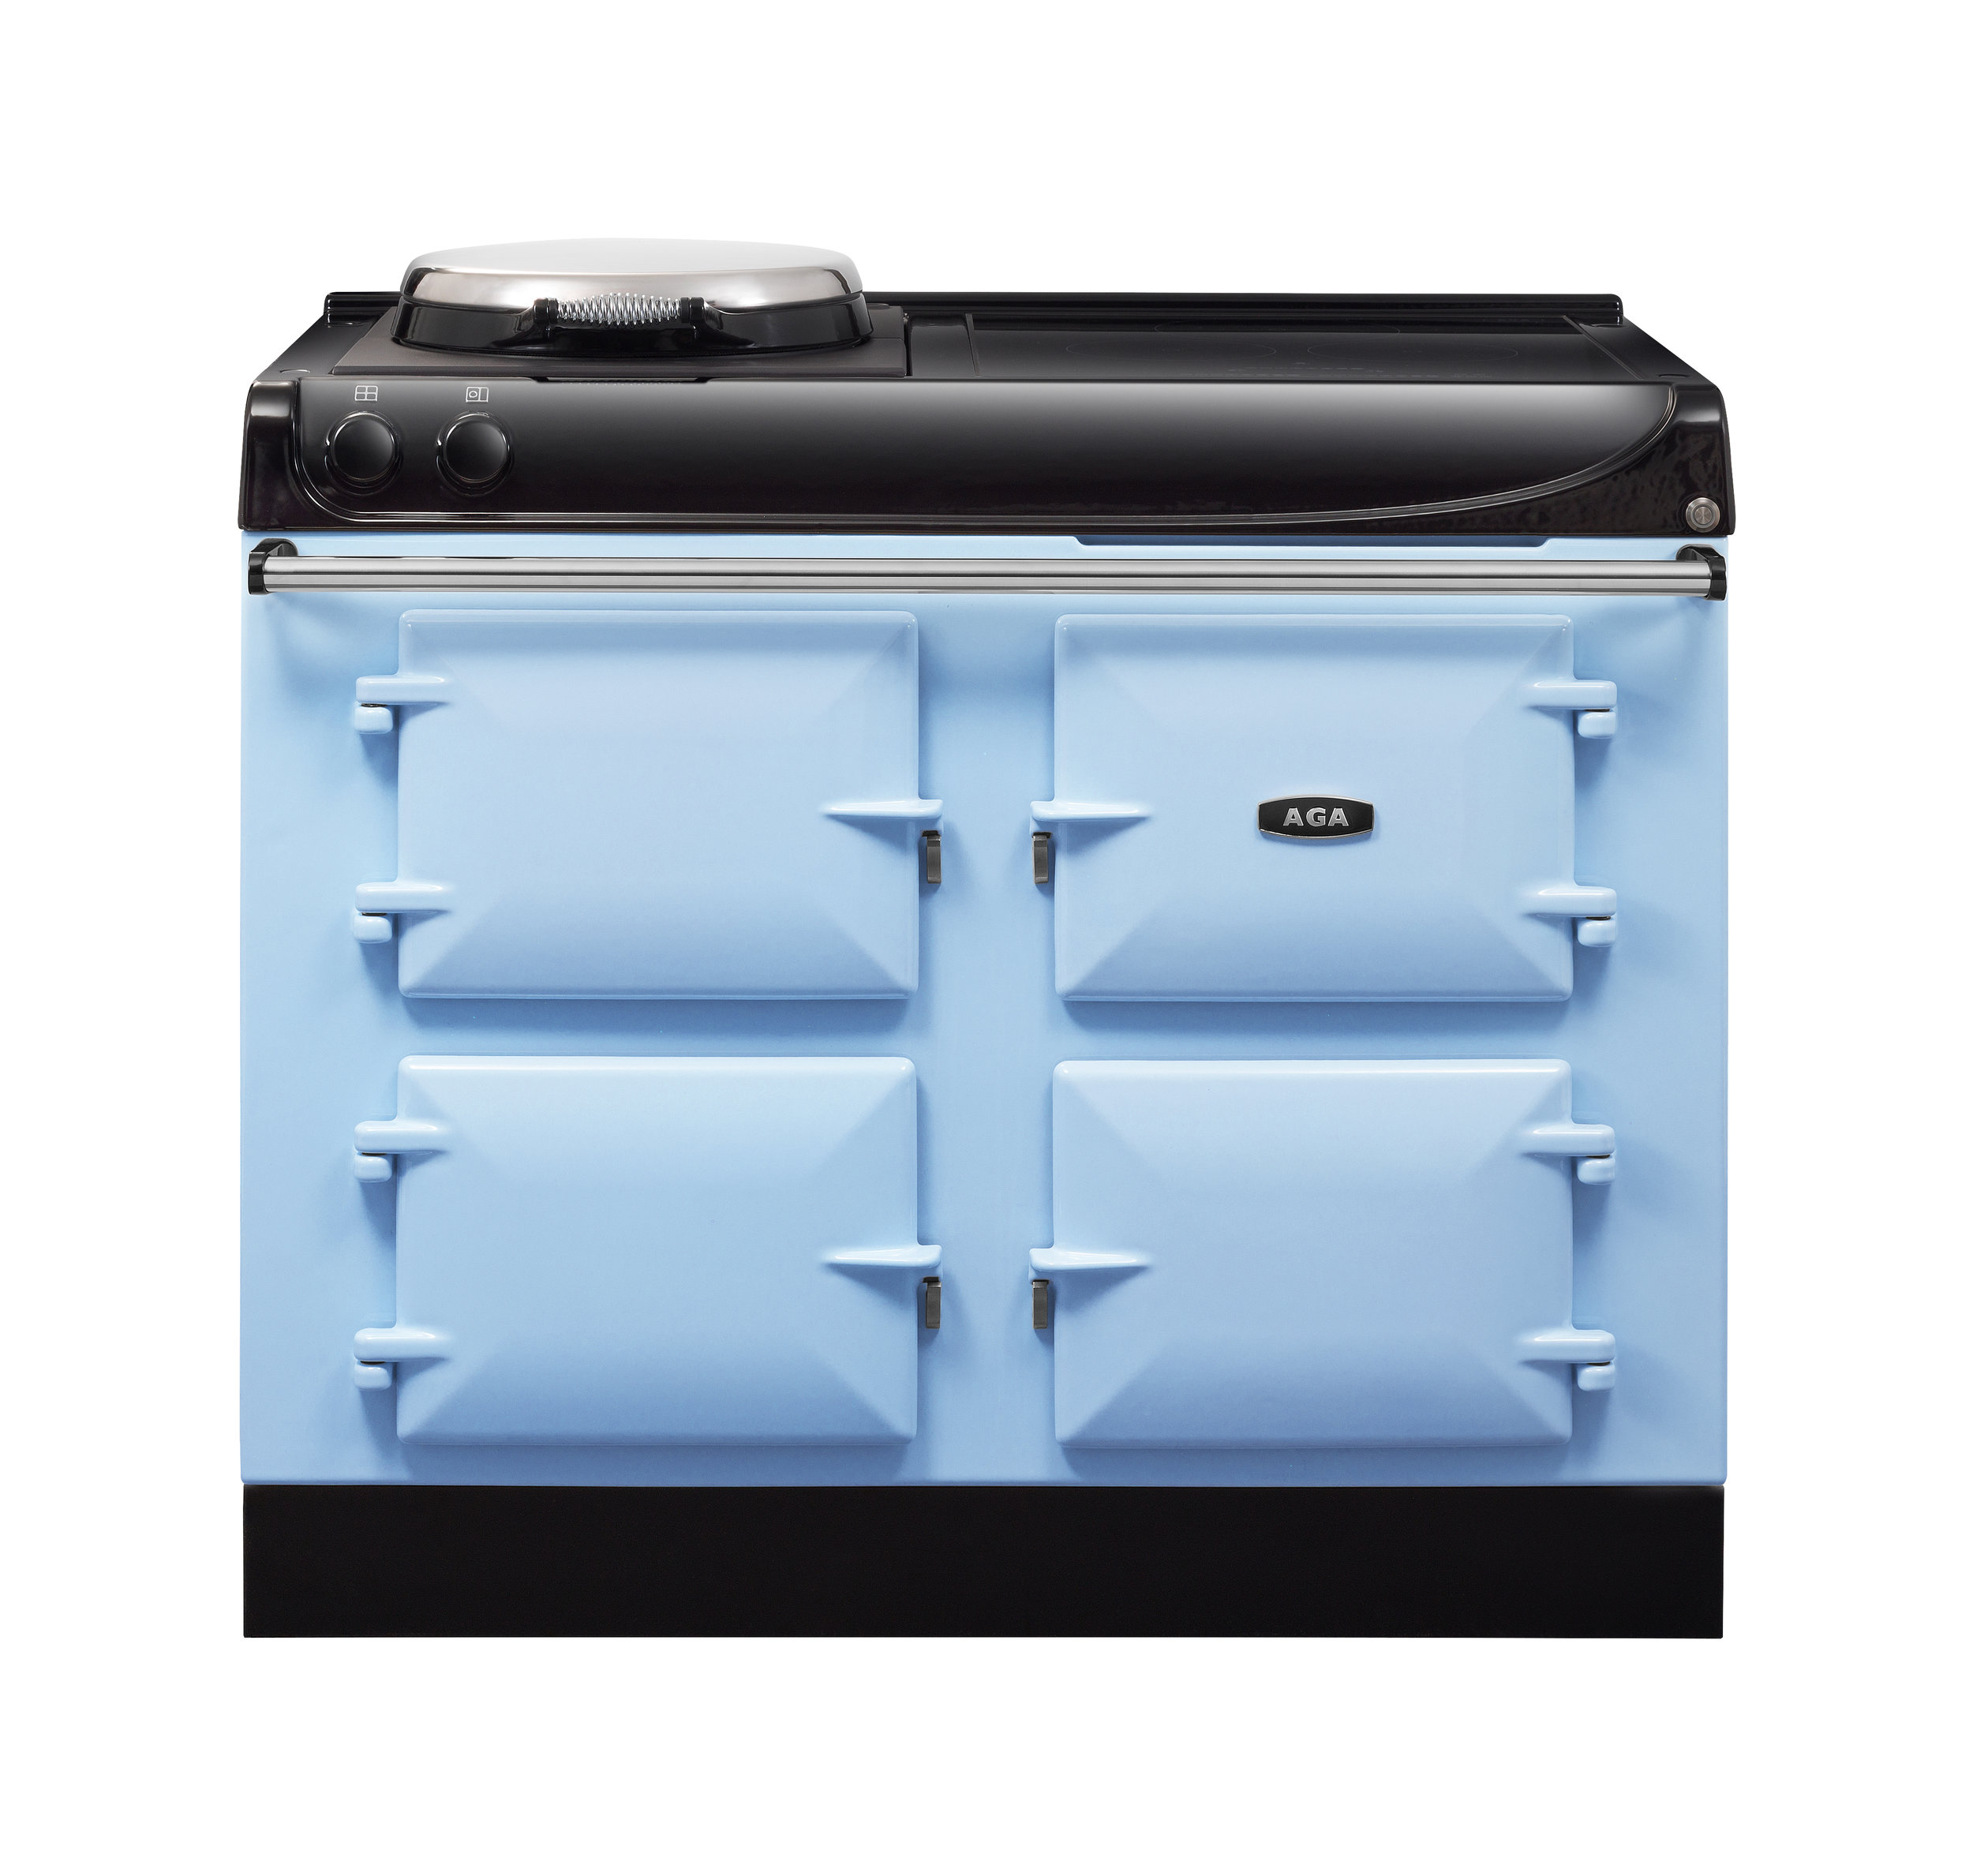 AGA 3 Series 110_Duck Egg Blue.jpg